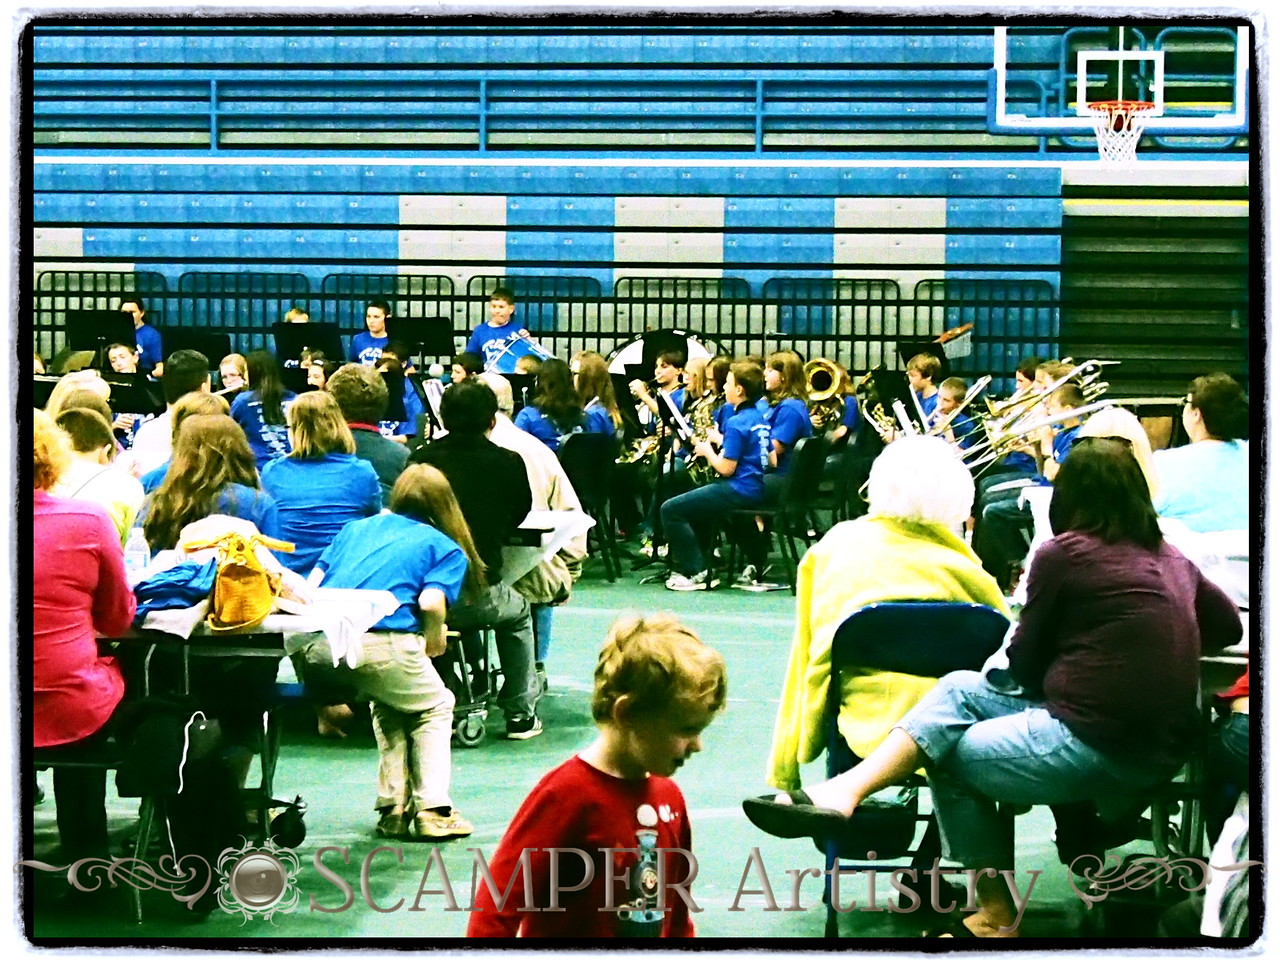 Chicken Barbecue AW Bands Concert, May 17, 2014